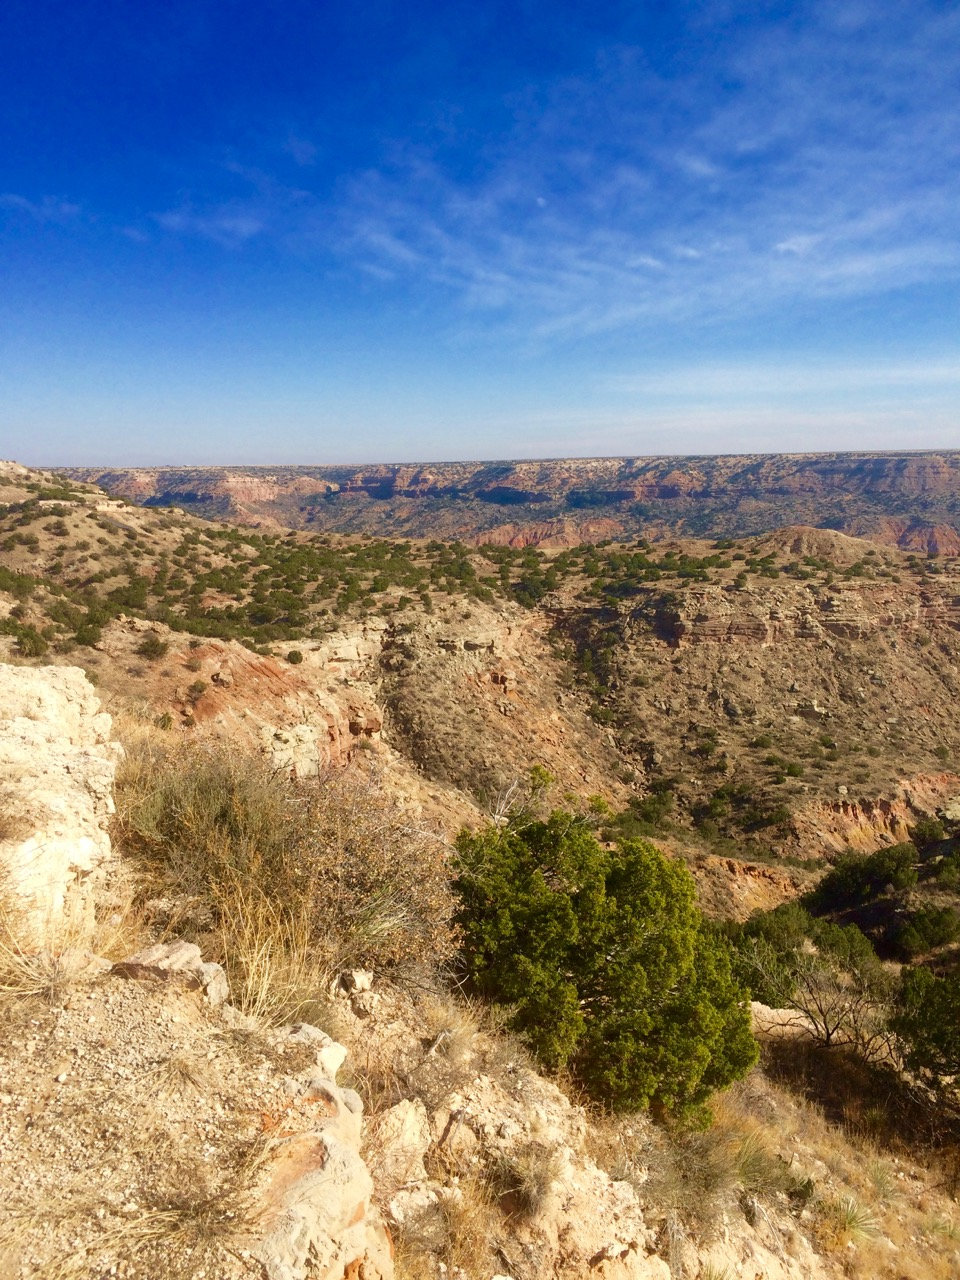 The breathtaking Palo Duro Canyon near Amarillo, TX.